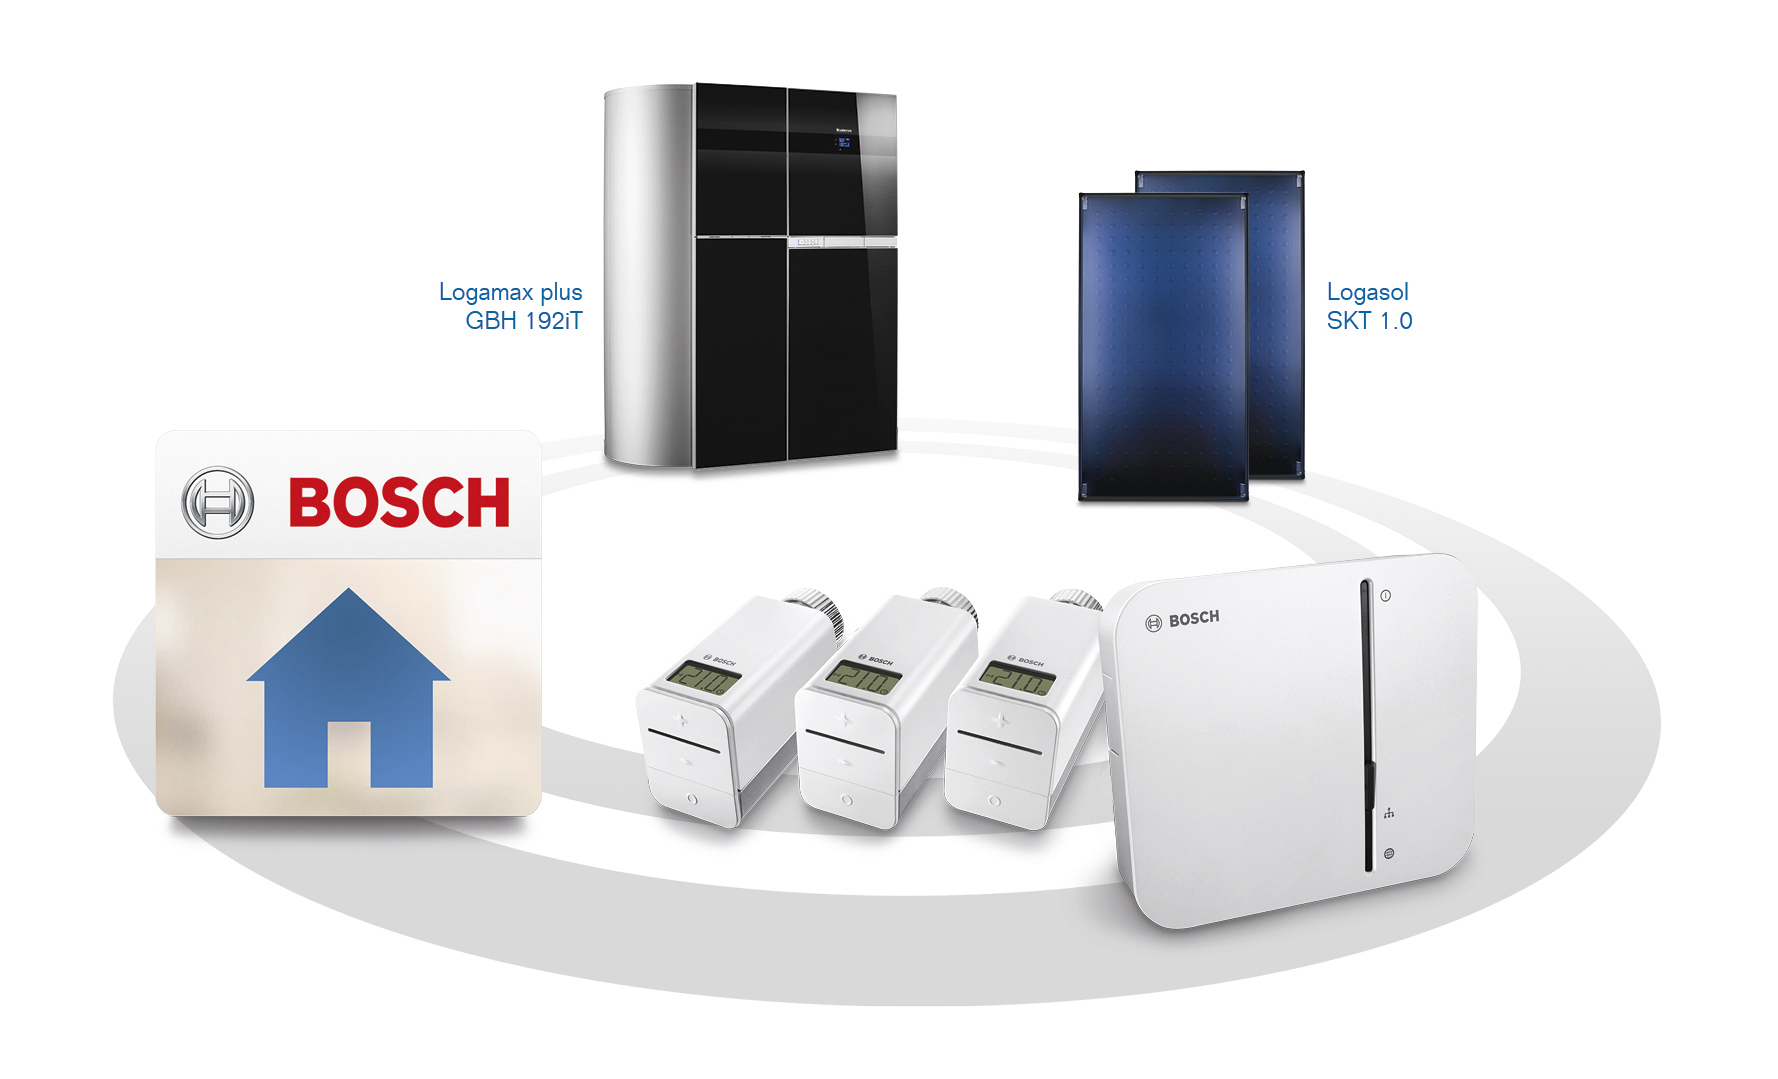 bosch smart home l sung regelt individuelle temperatur in jedem raum. Black Bedroom Furniture Sets. Home Design Ideas